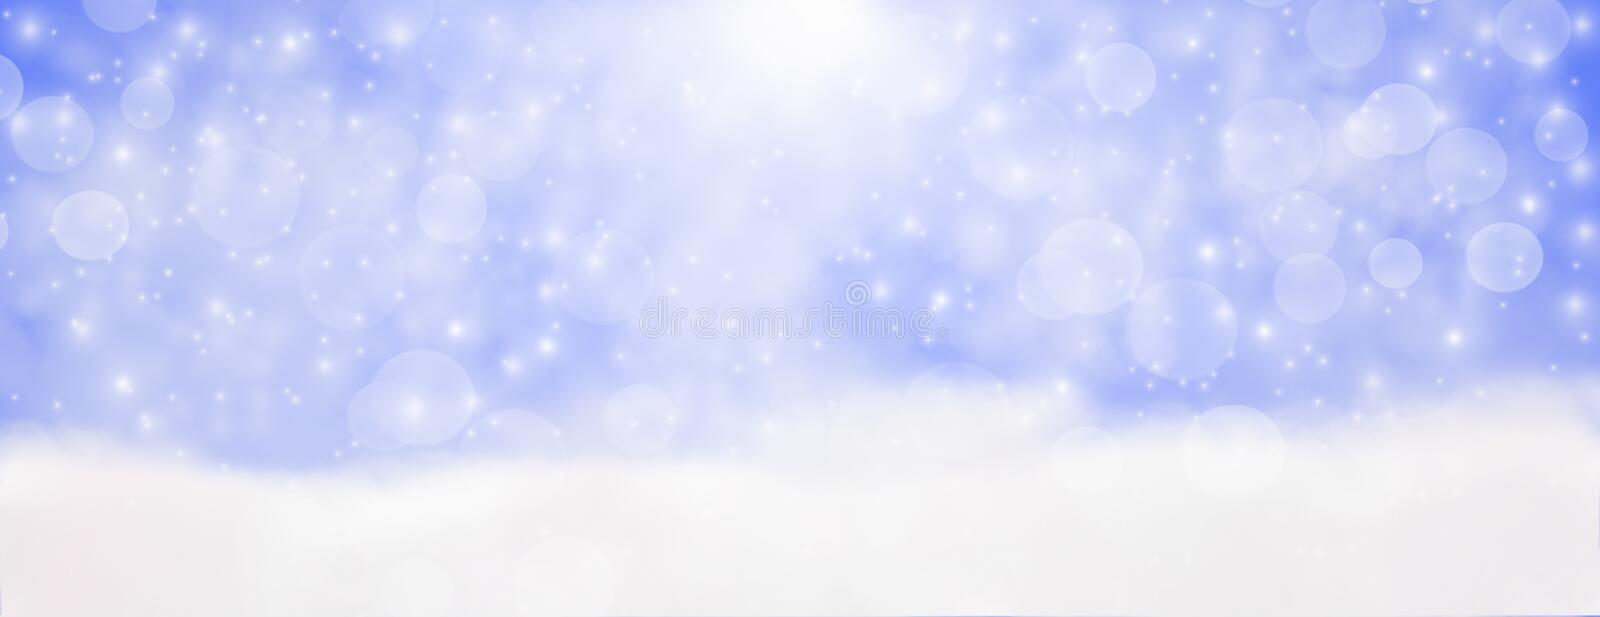 Winter outdoor with falling snowflakes, Panoramic web banner horizontal, with snow background, bokeh And glittering, Concept of c vector illustration